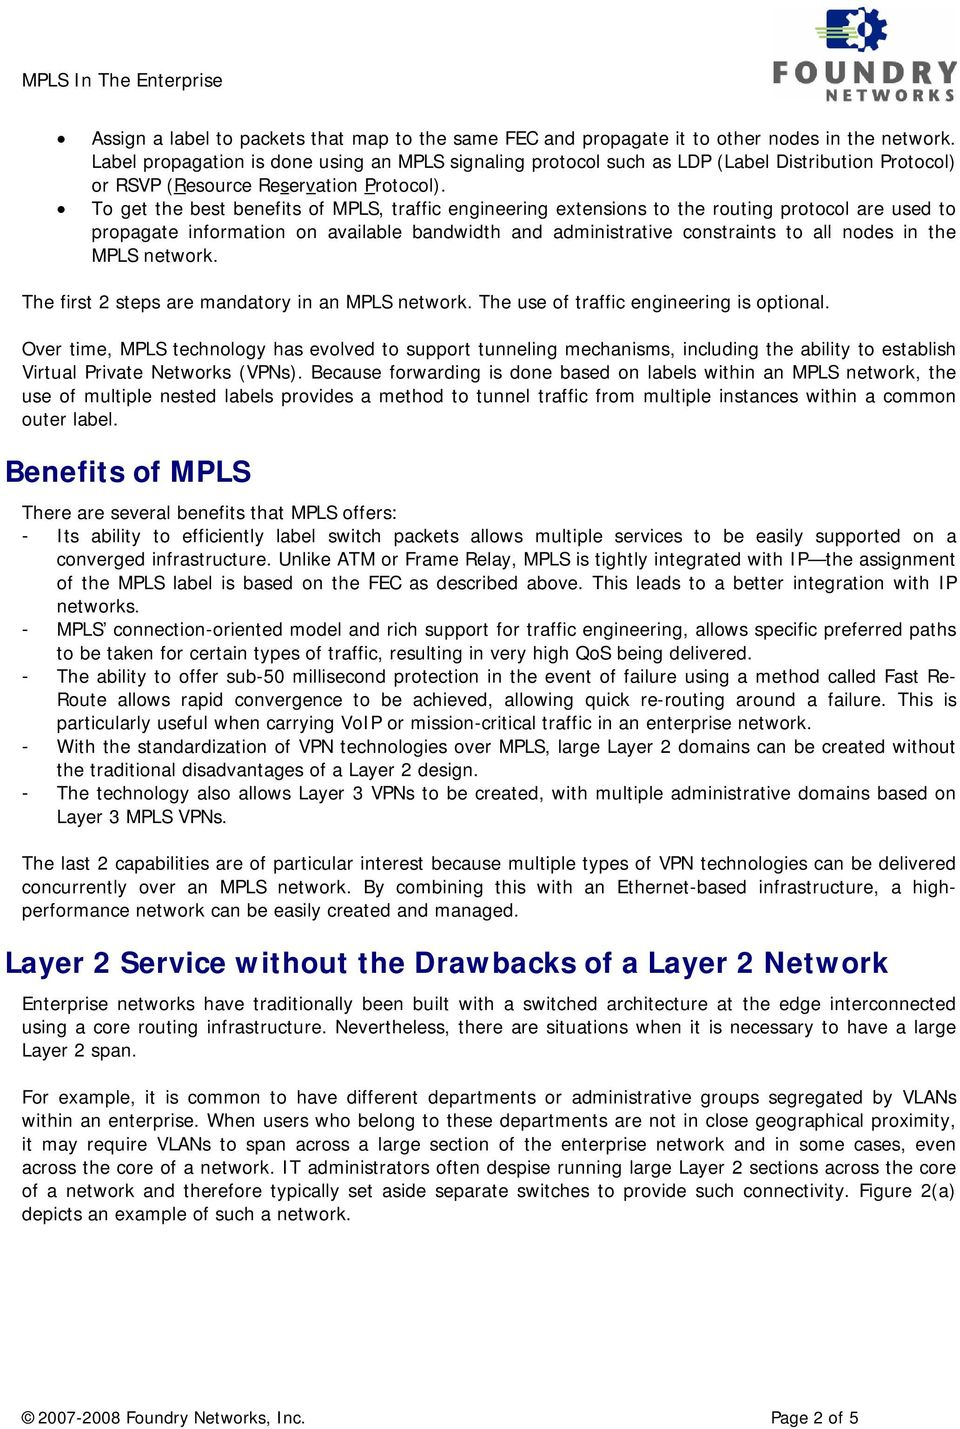 To get the best benefits of MPLS, traffic engineering extensions to the routing protocol are used to propagate information on available bandwidth and administrative constraints to all nodes in the